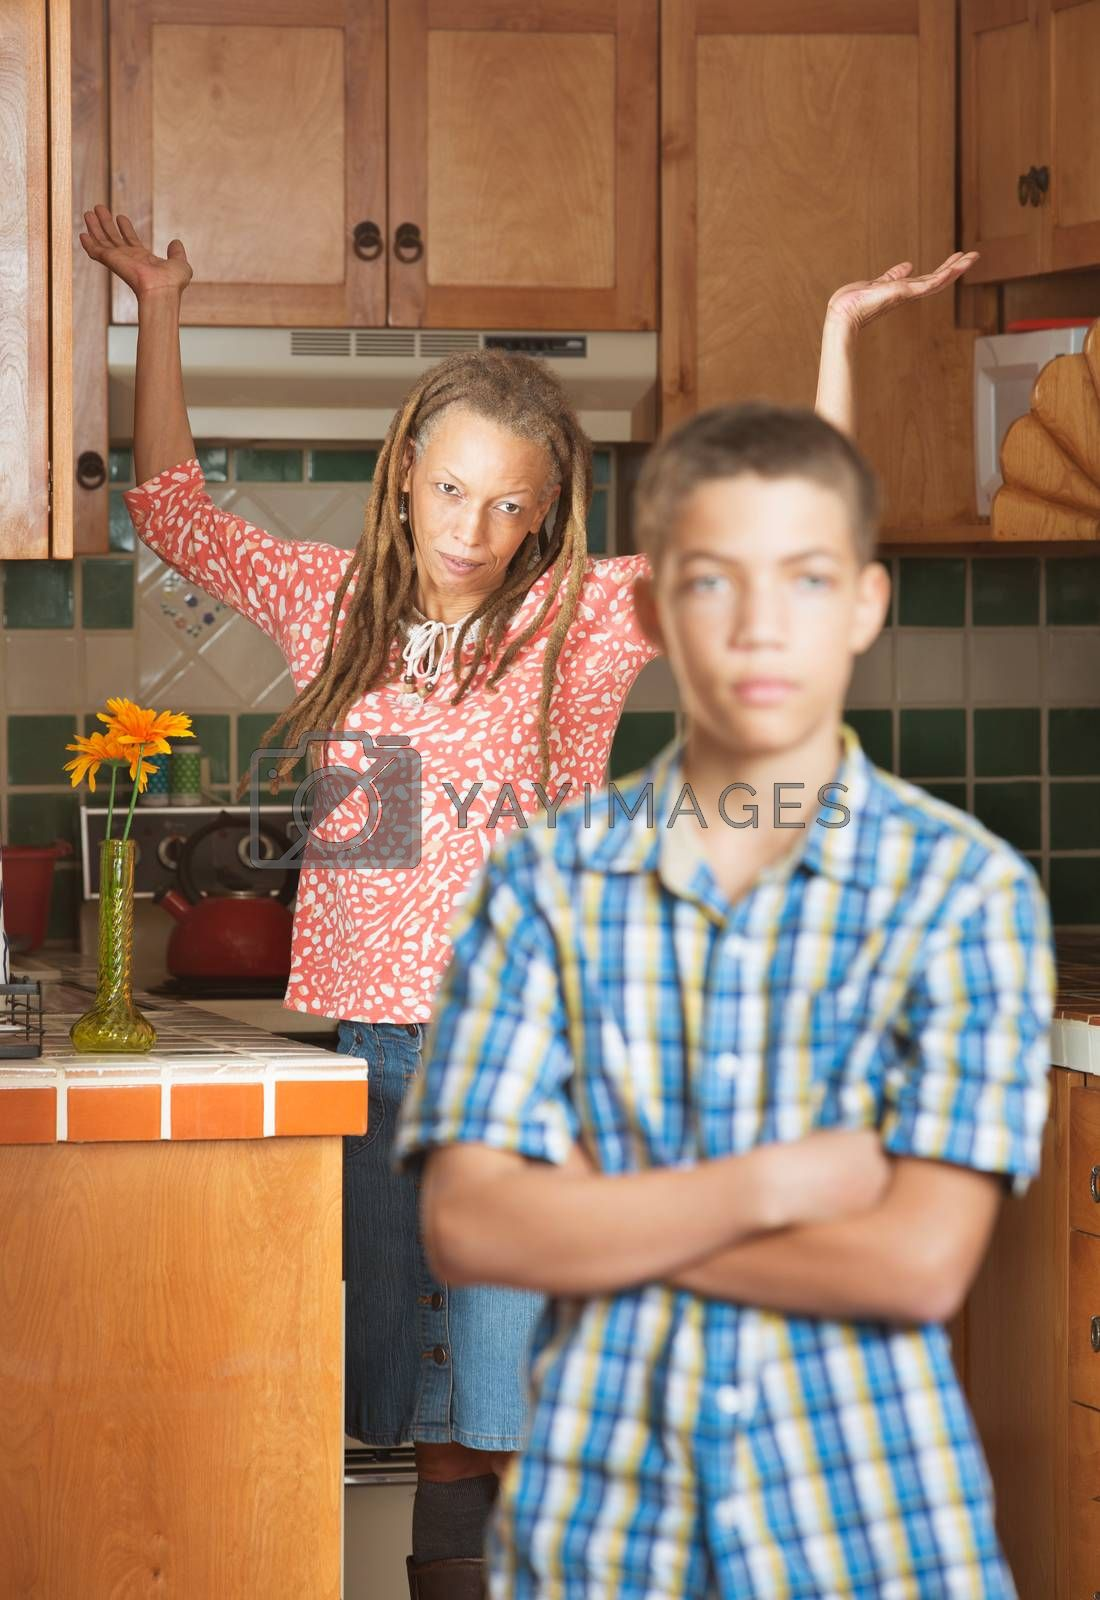 Mother of teenaged son throws her hands up in frustration as they both stand in the kitchen